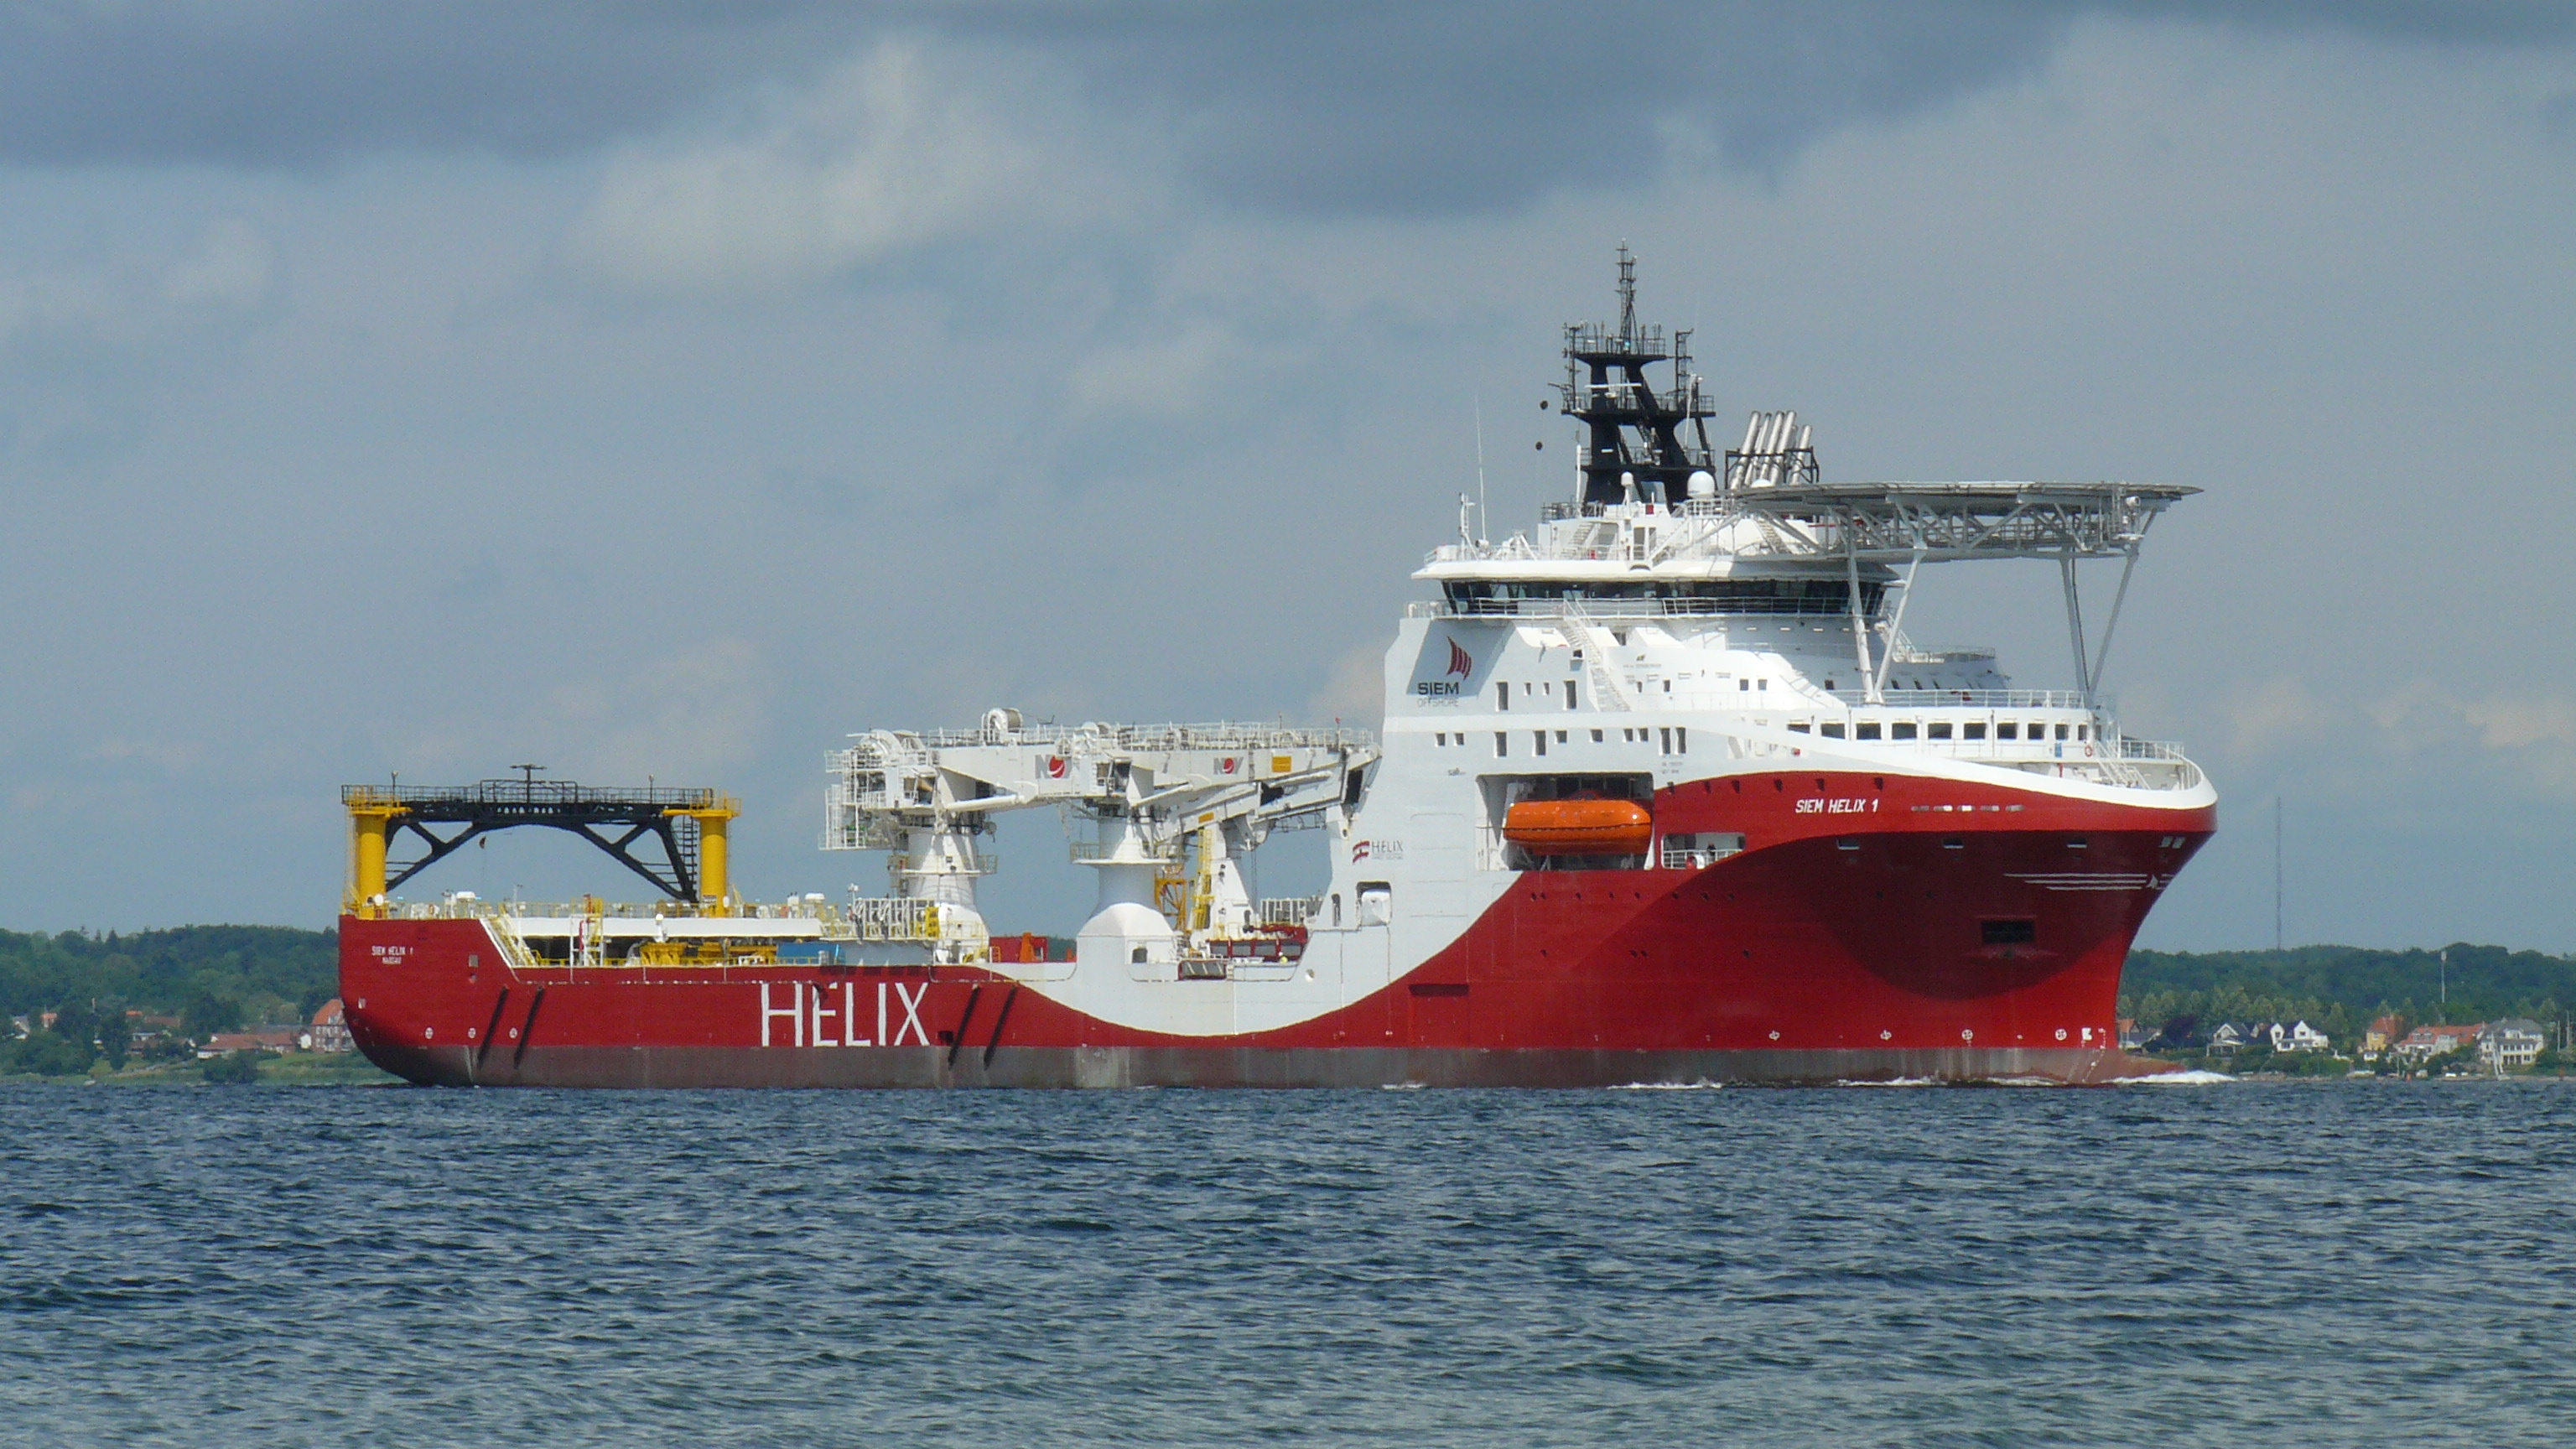 Fsg Delivers Well Intervention Vessel Siem Helix I